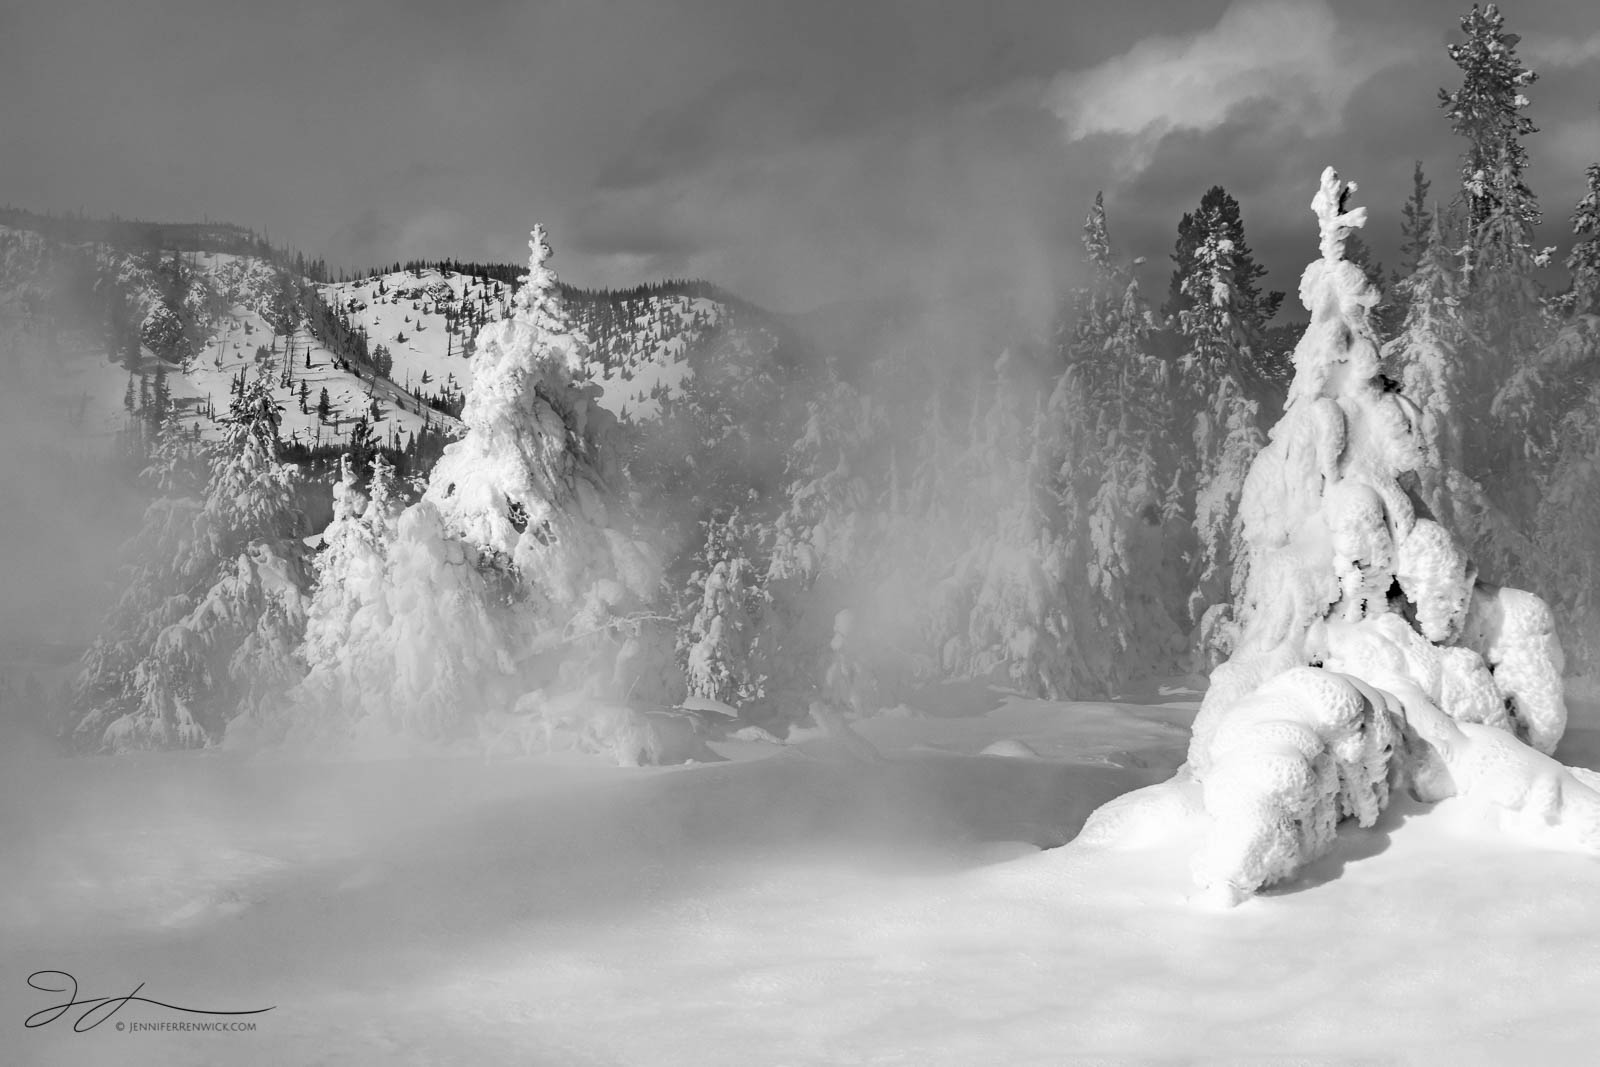 """Steam passes through two trees covered in rime ice and snow in Yellowstone National Park. This image is part of my """"Winter Statues..."""